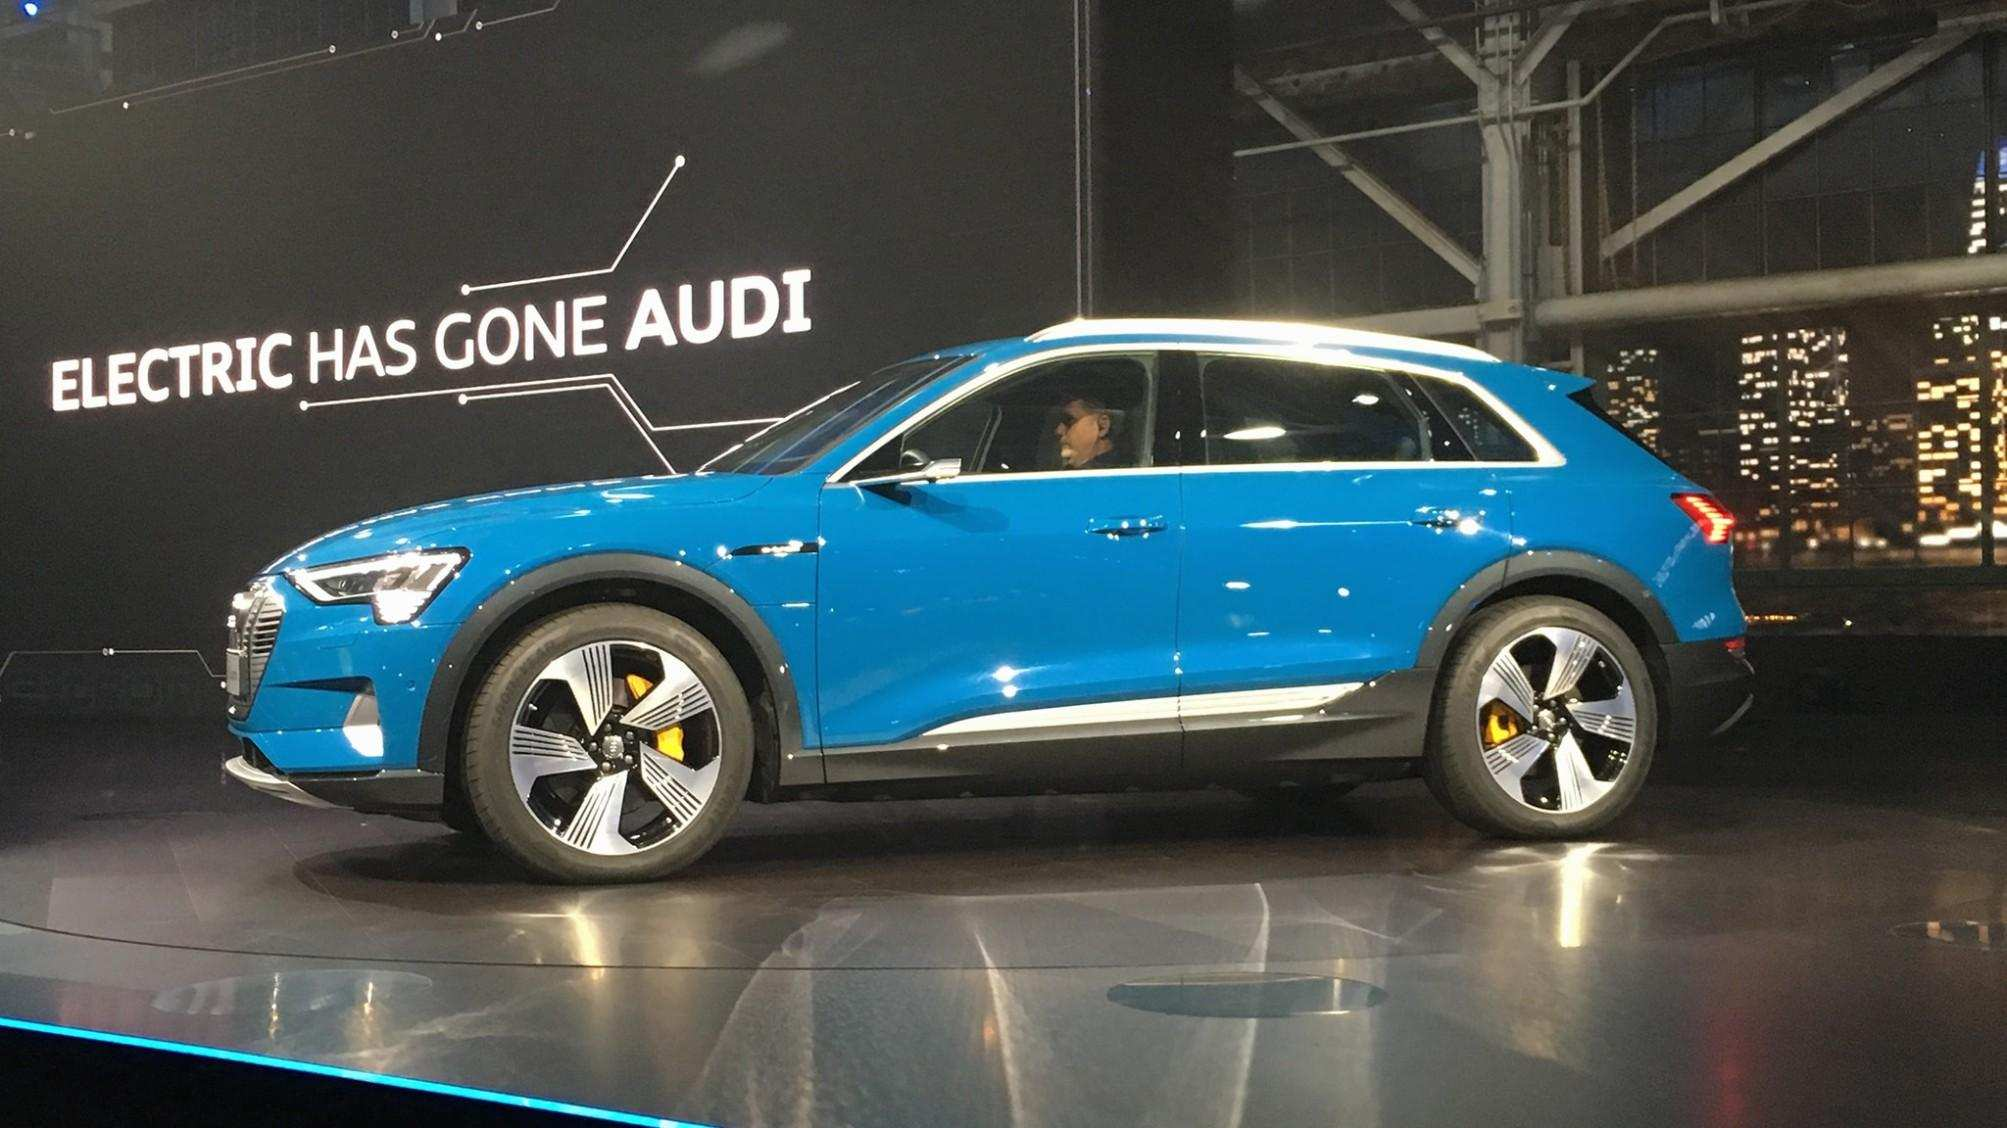 86 All New 2019 Audi E Tron Quattro Release Date Price And Release Date